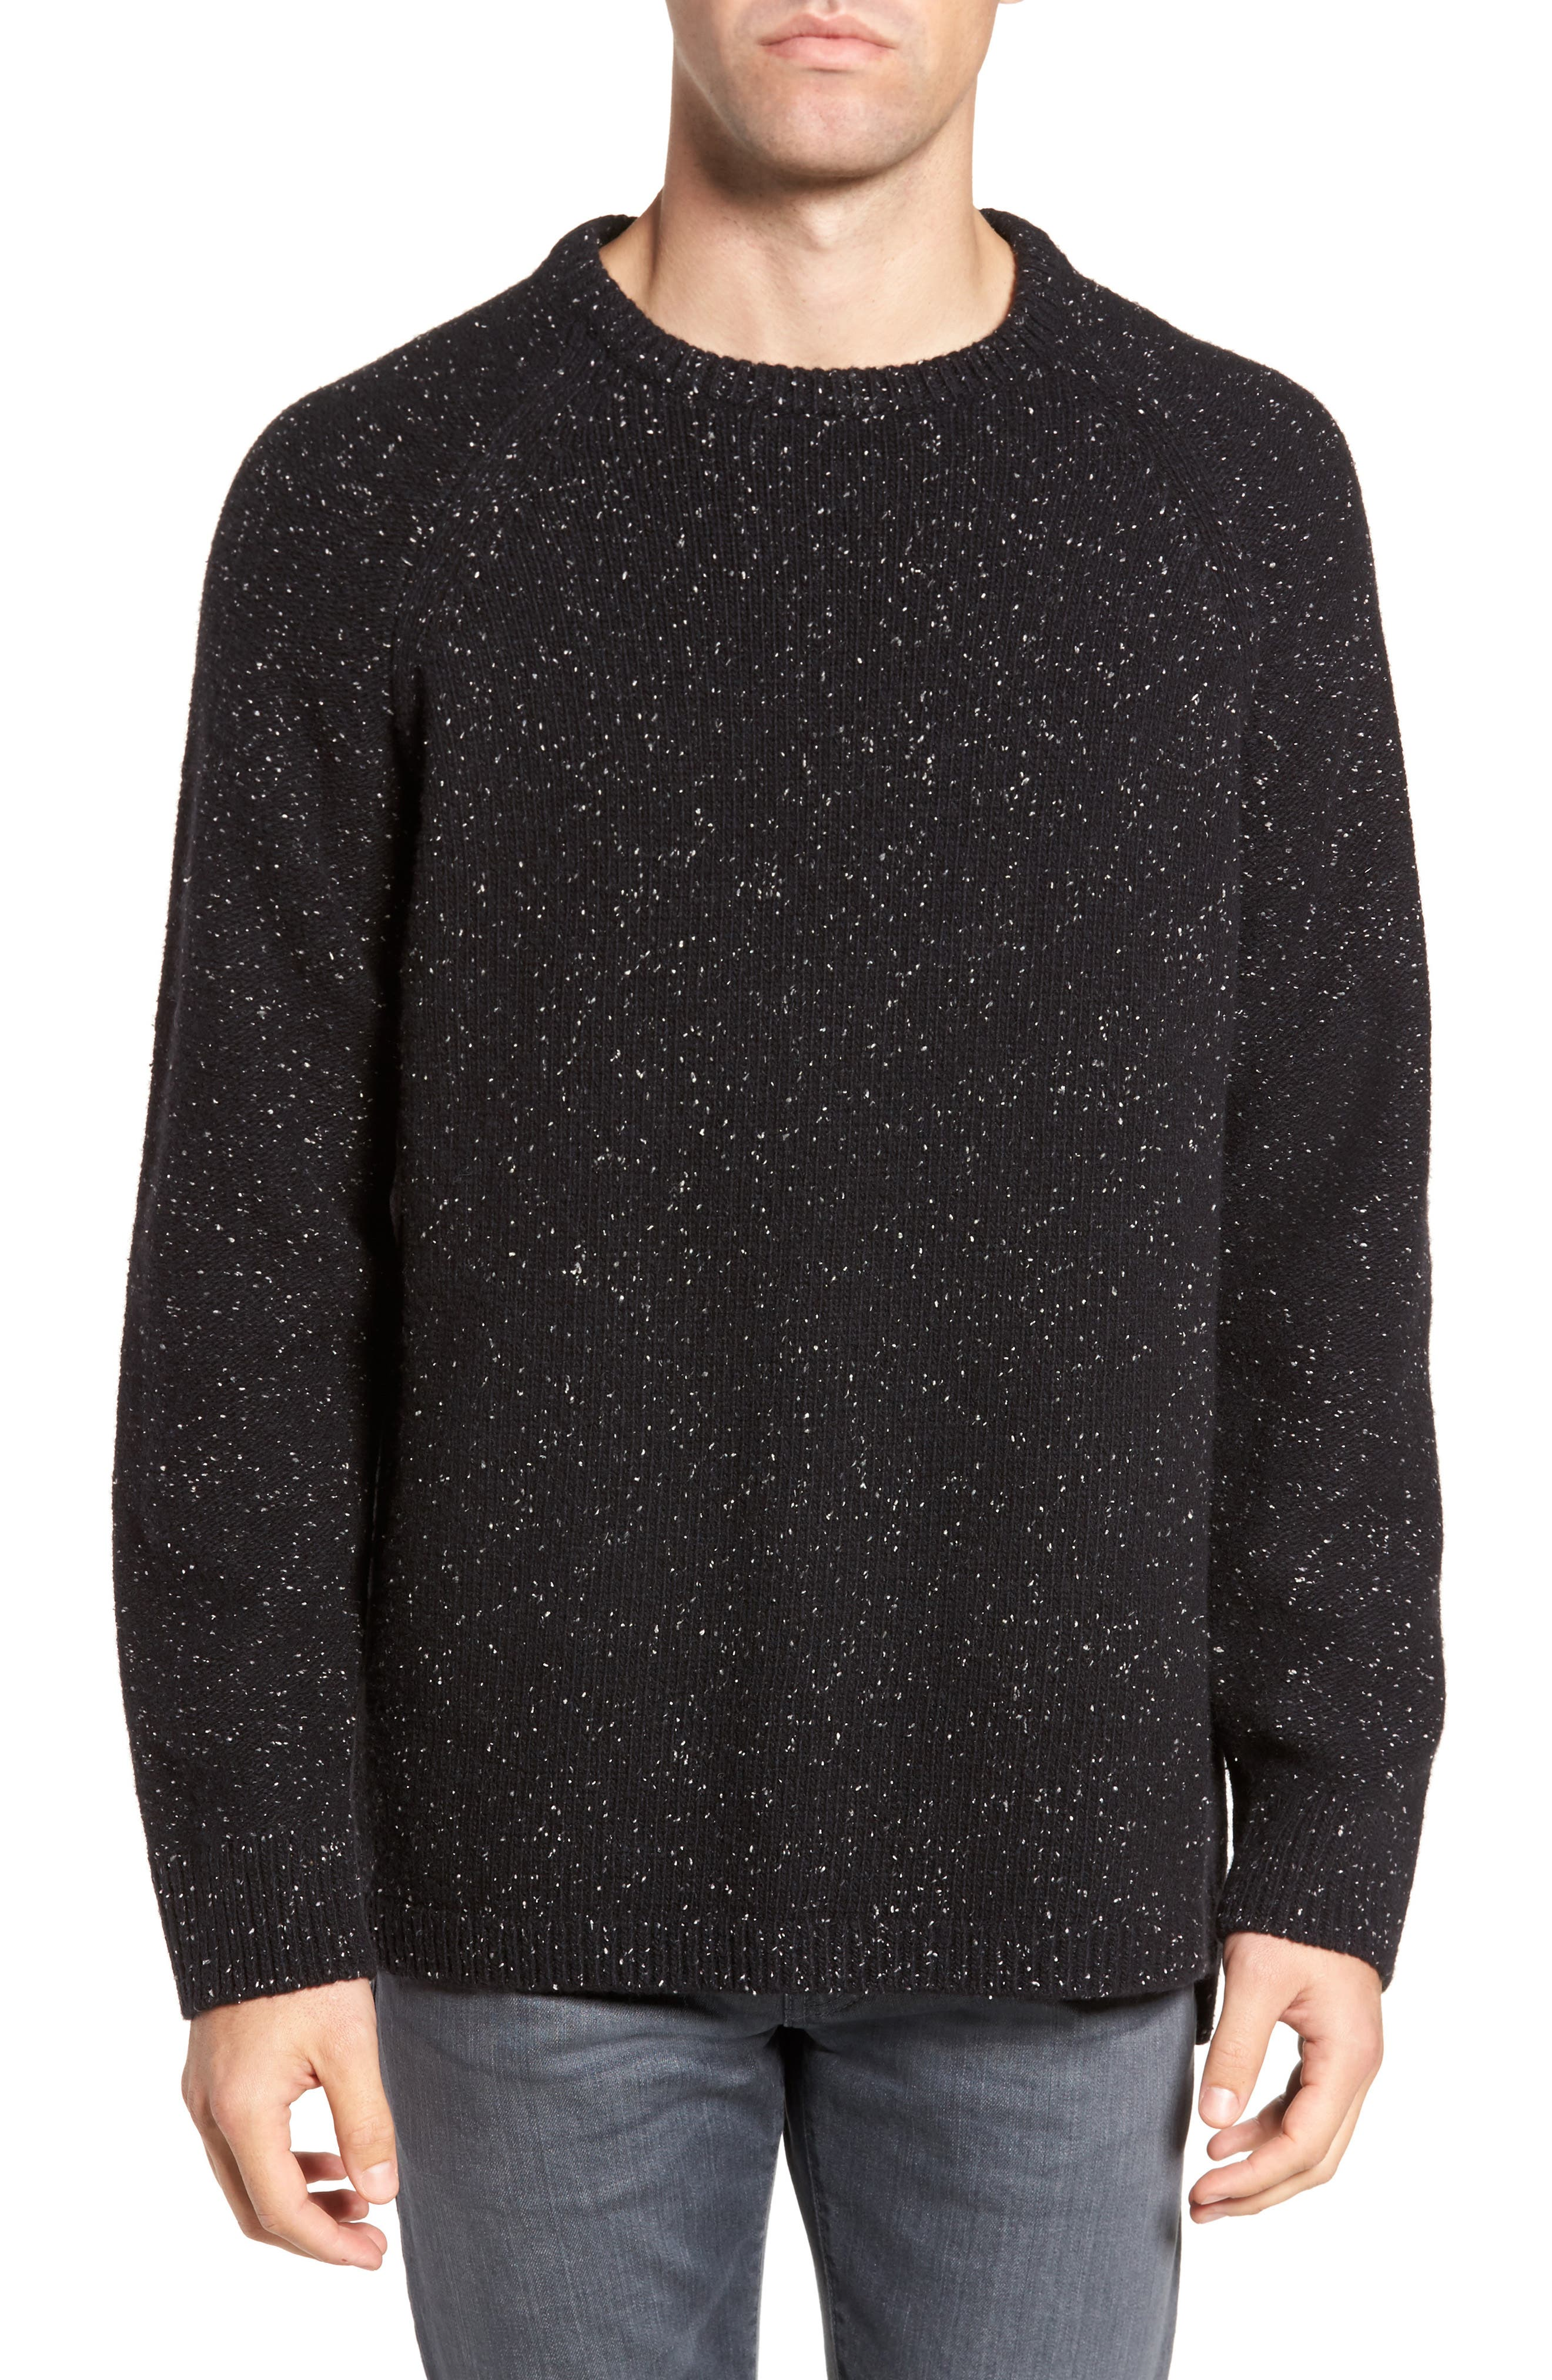 Donegal Lambswool Blend Sweater,                         Main,                         color, Black